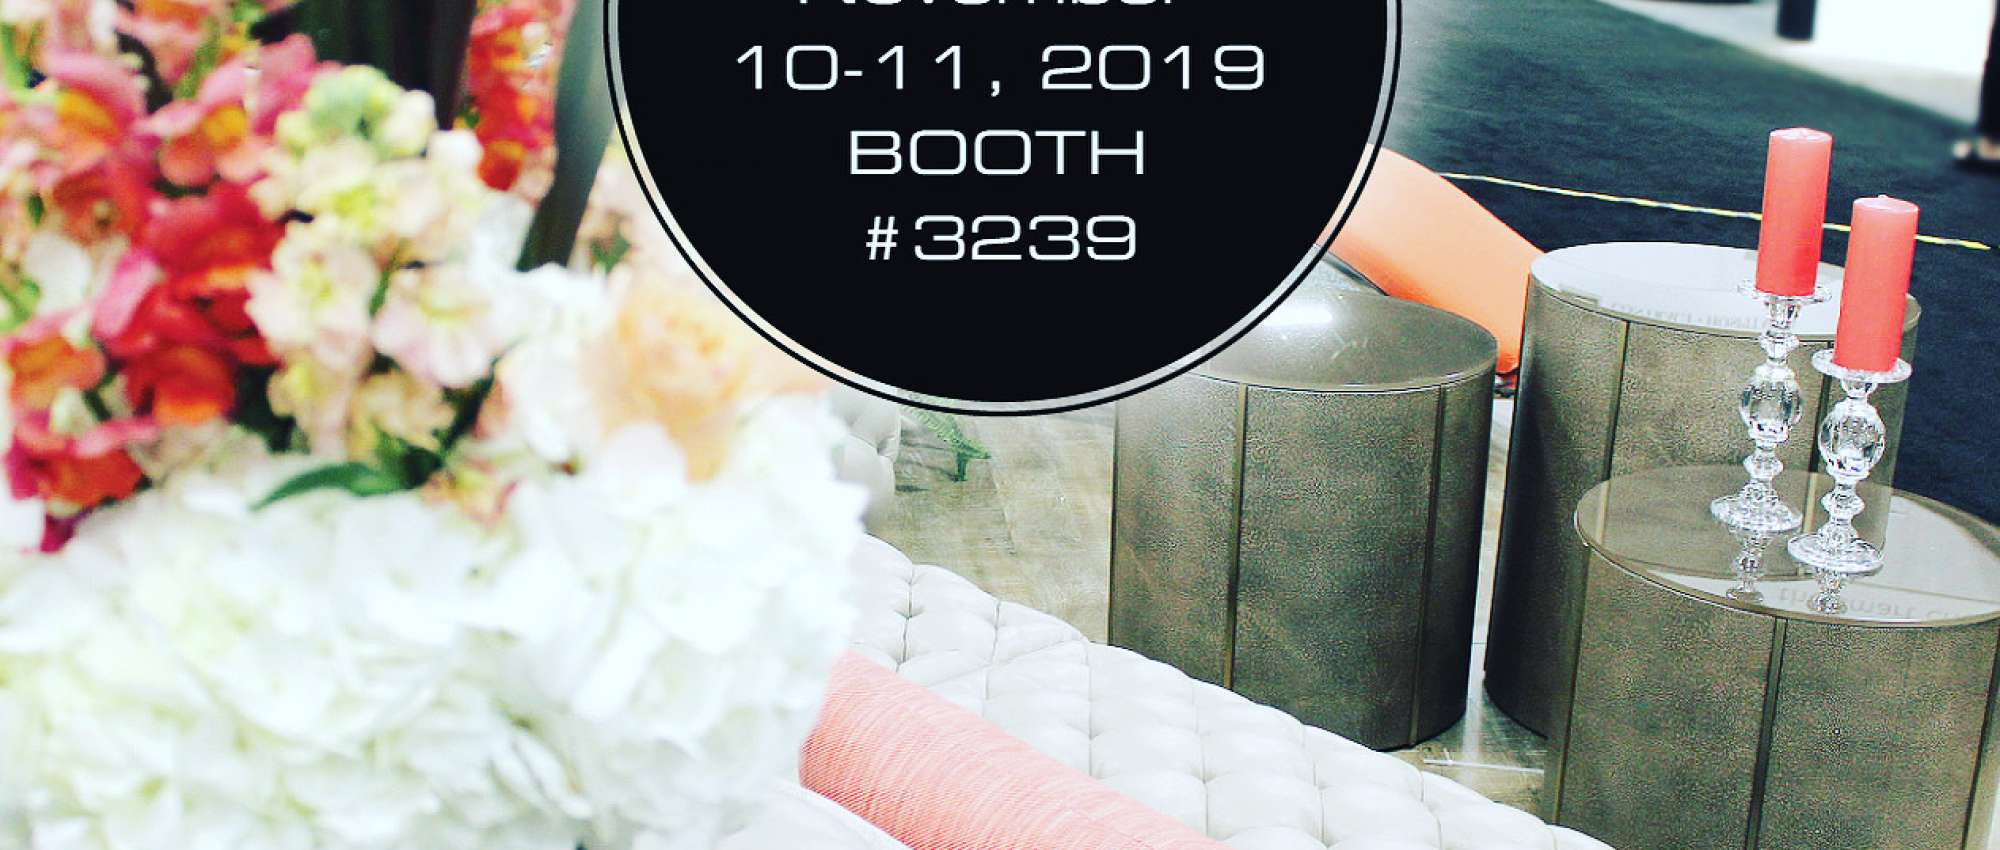 See you soon at BDNY, NYC!